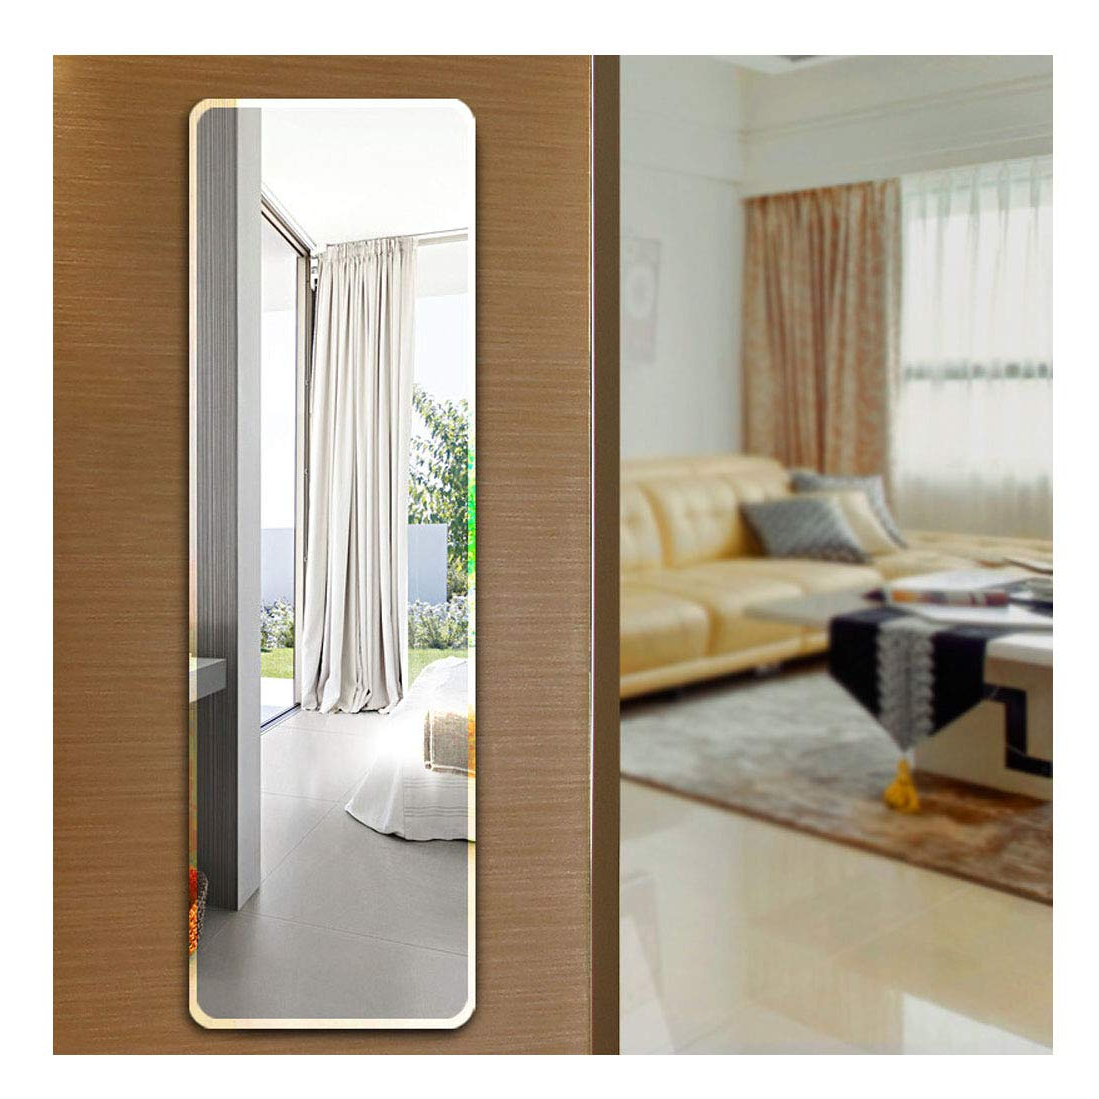 Frameless Full Length Wall Mirrors Inside 2020 Ecentaur Wall Mounted Beveled Edge Mirror Doors Hanging Mirrors Full Length  Glass Panel Rectangular Frameless Mirror For Bedroom Bathroom Living Room (View 5 of 20)